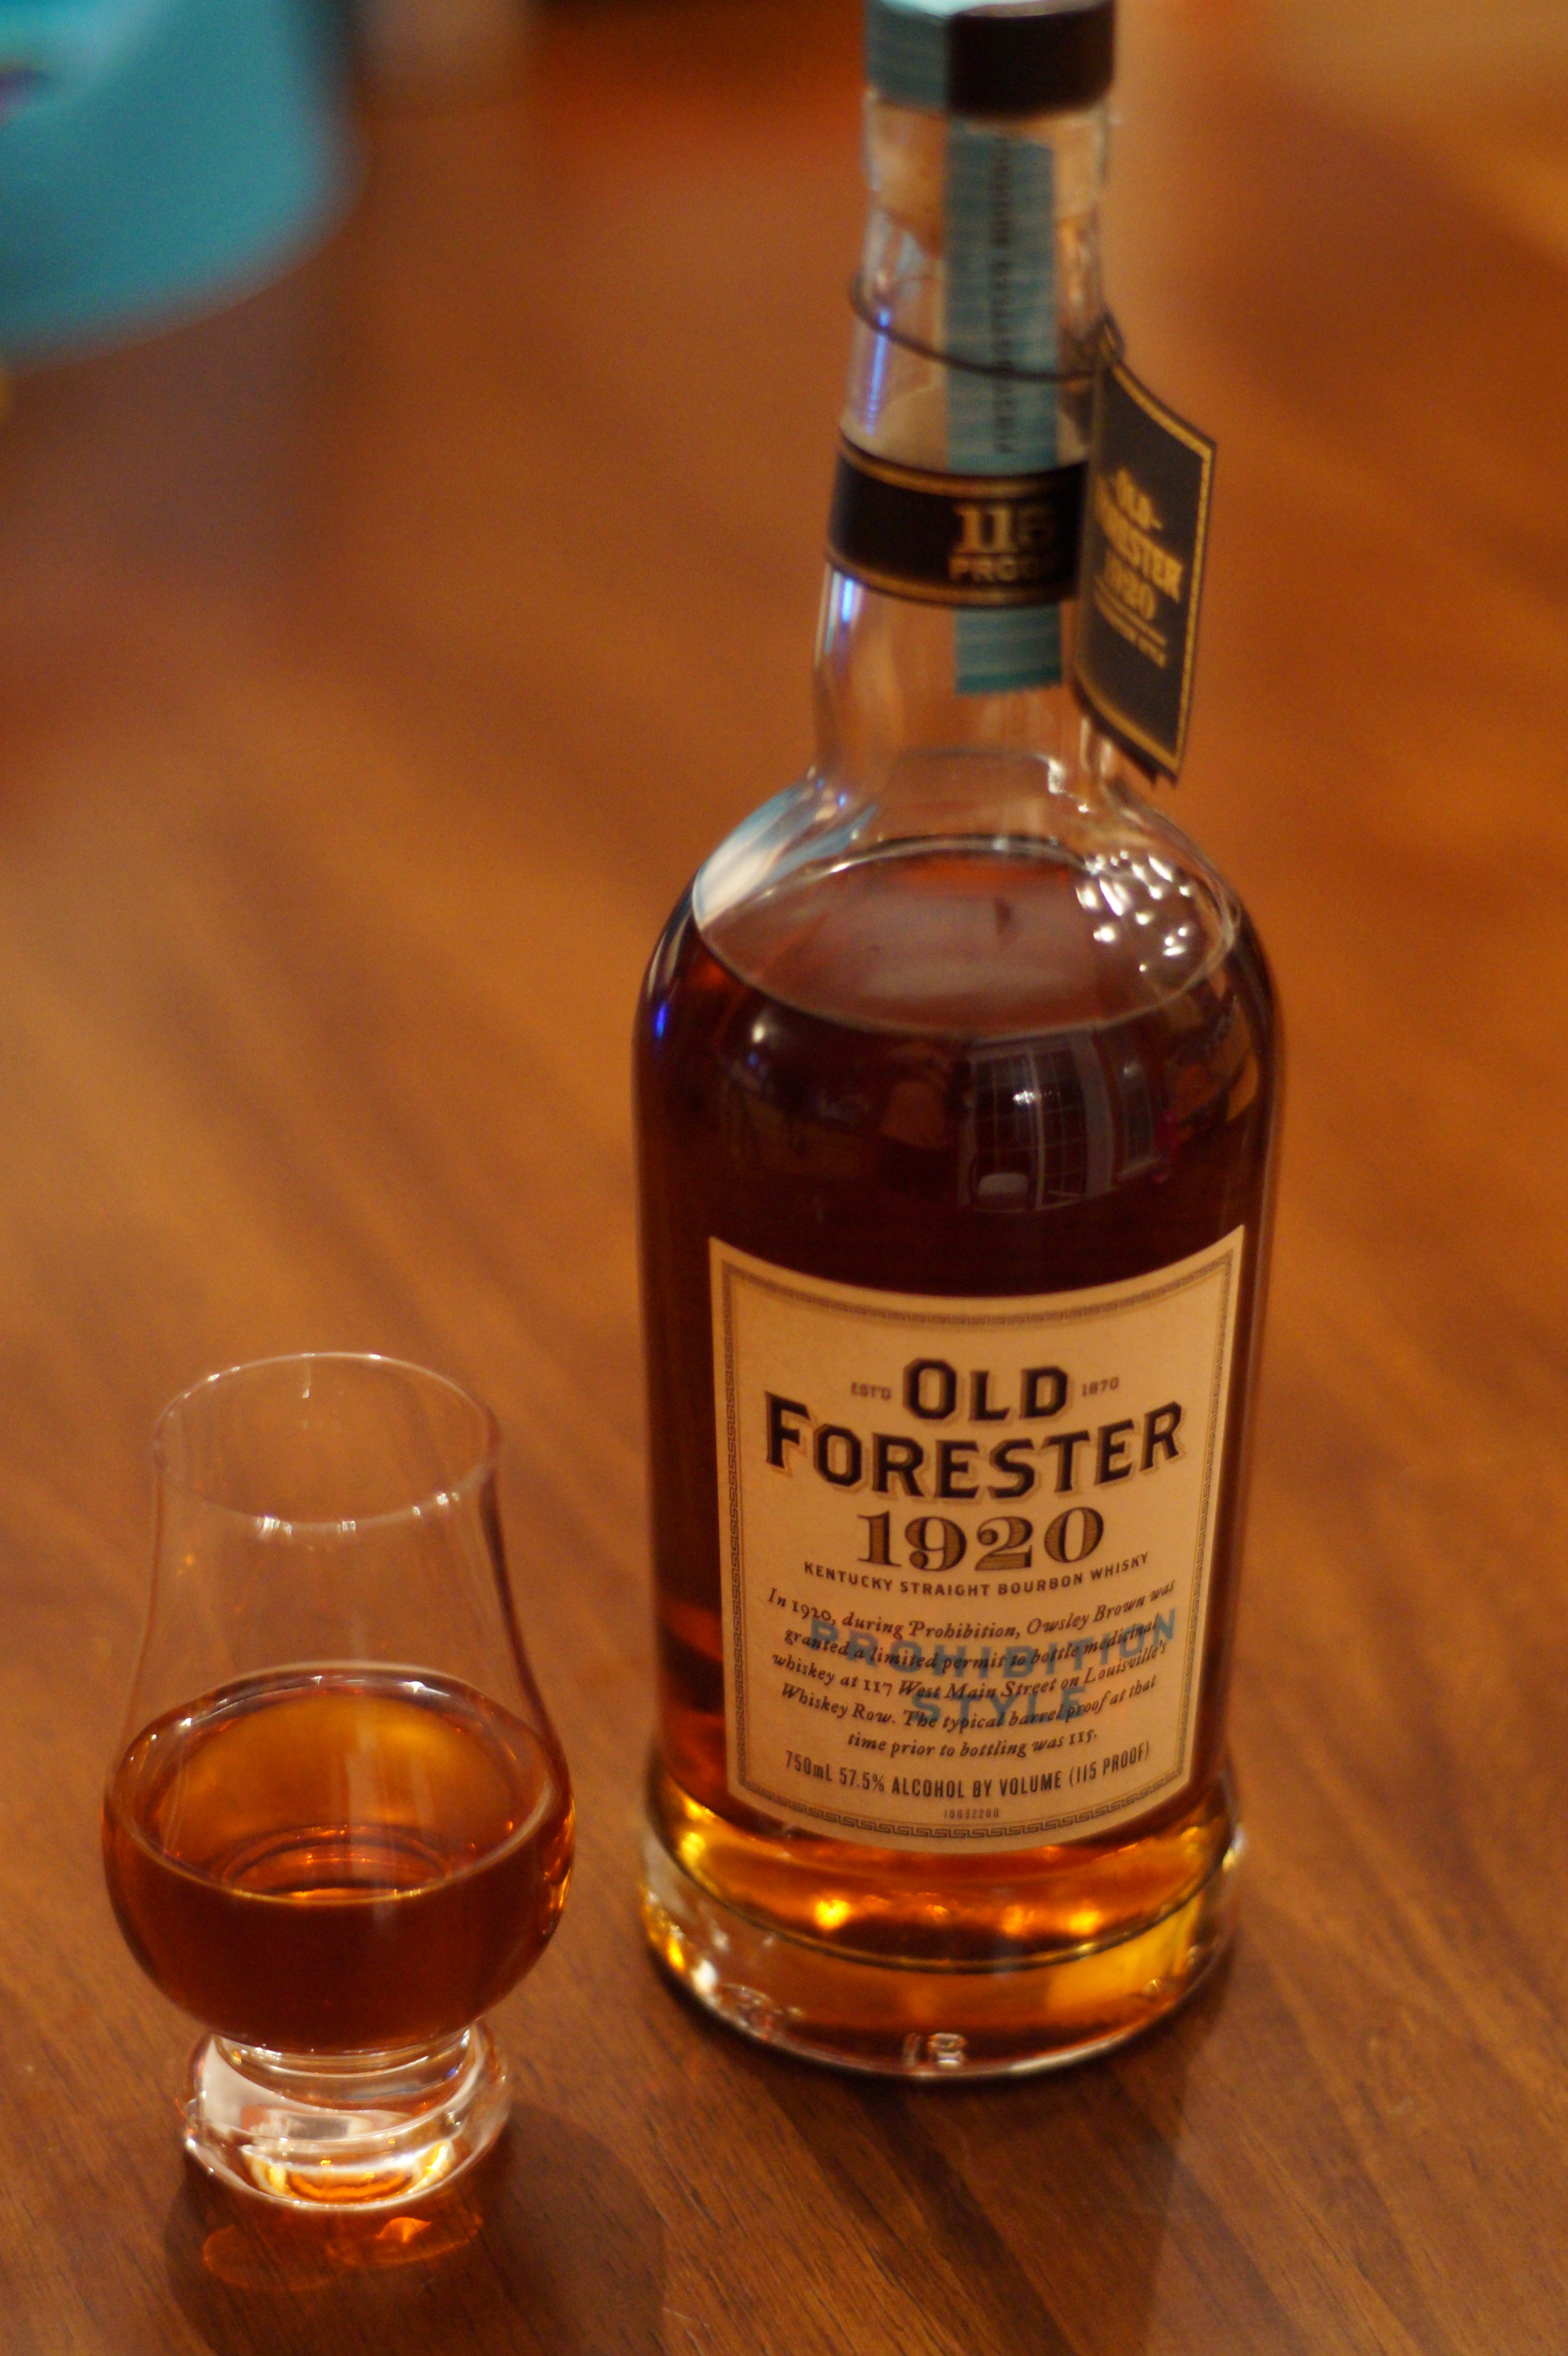 Old Forester 1920 Prohibition Style Bourbon Review